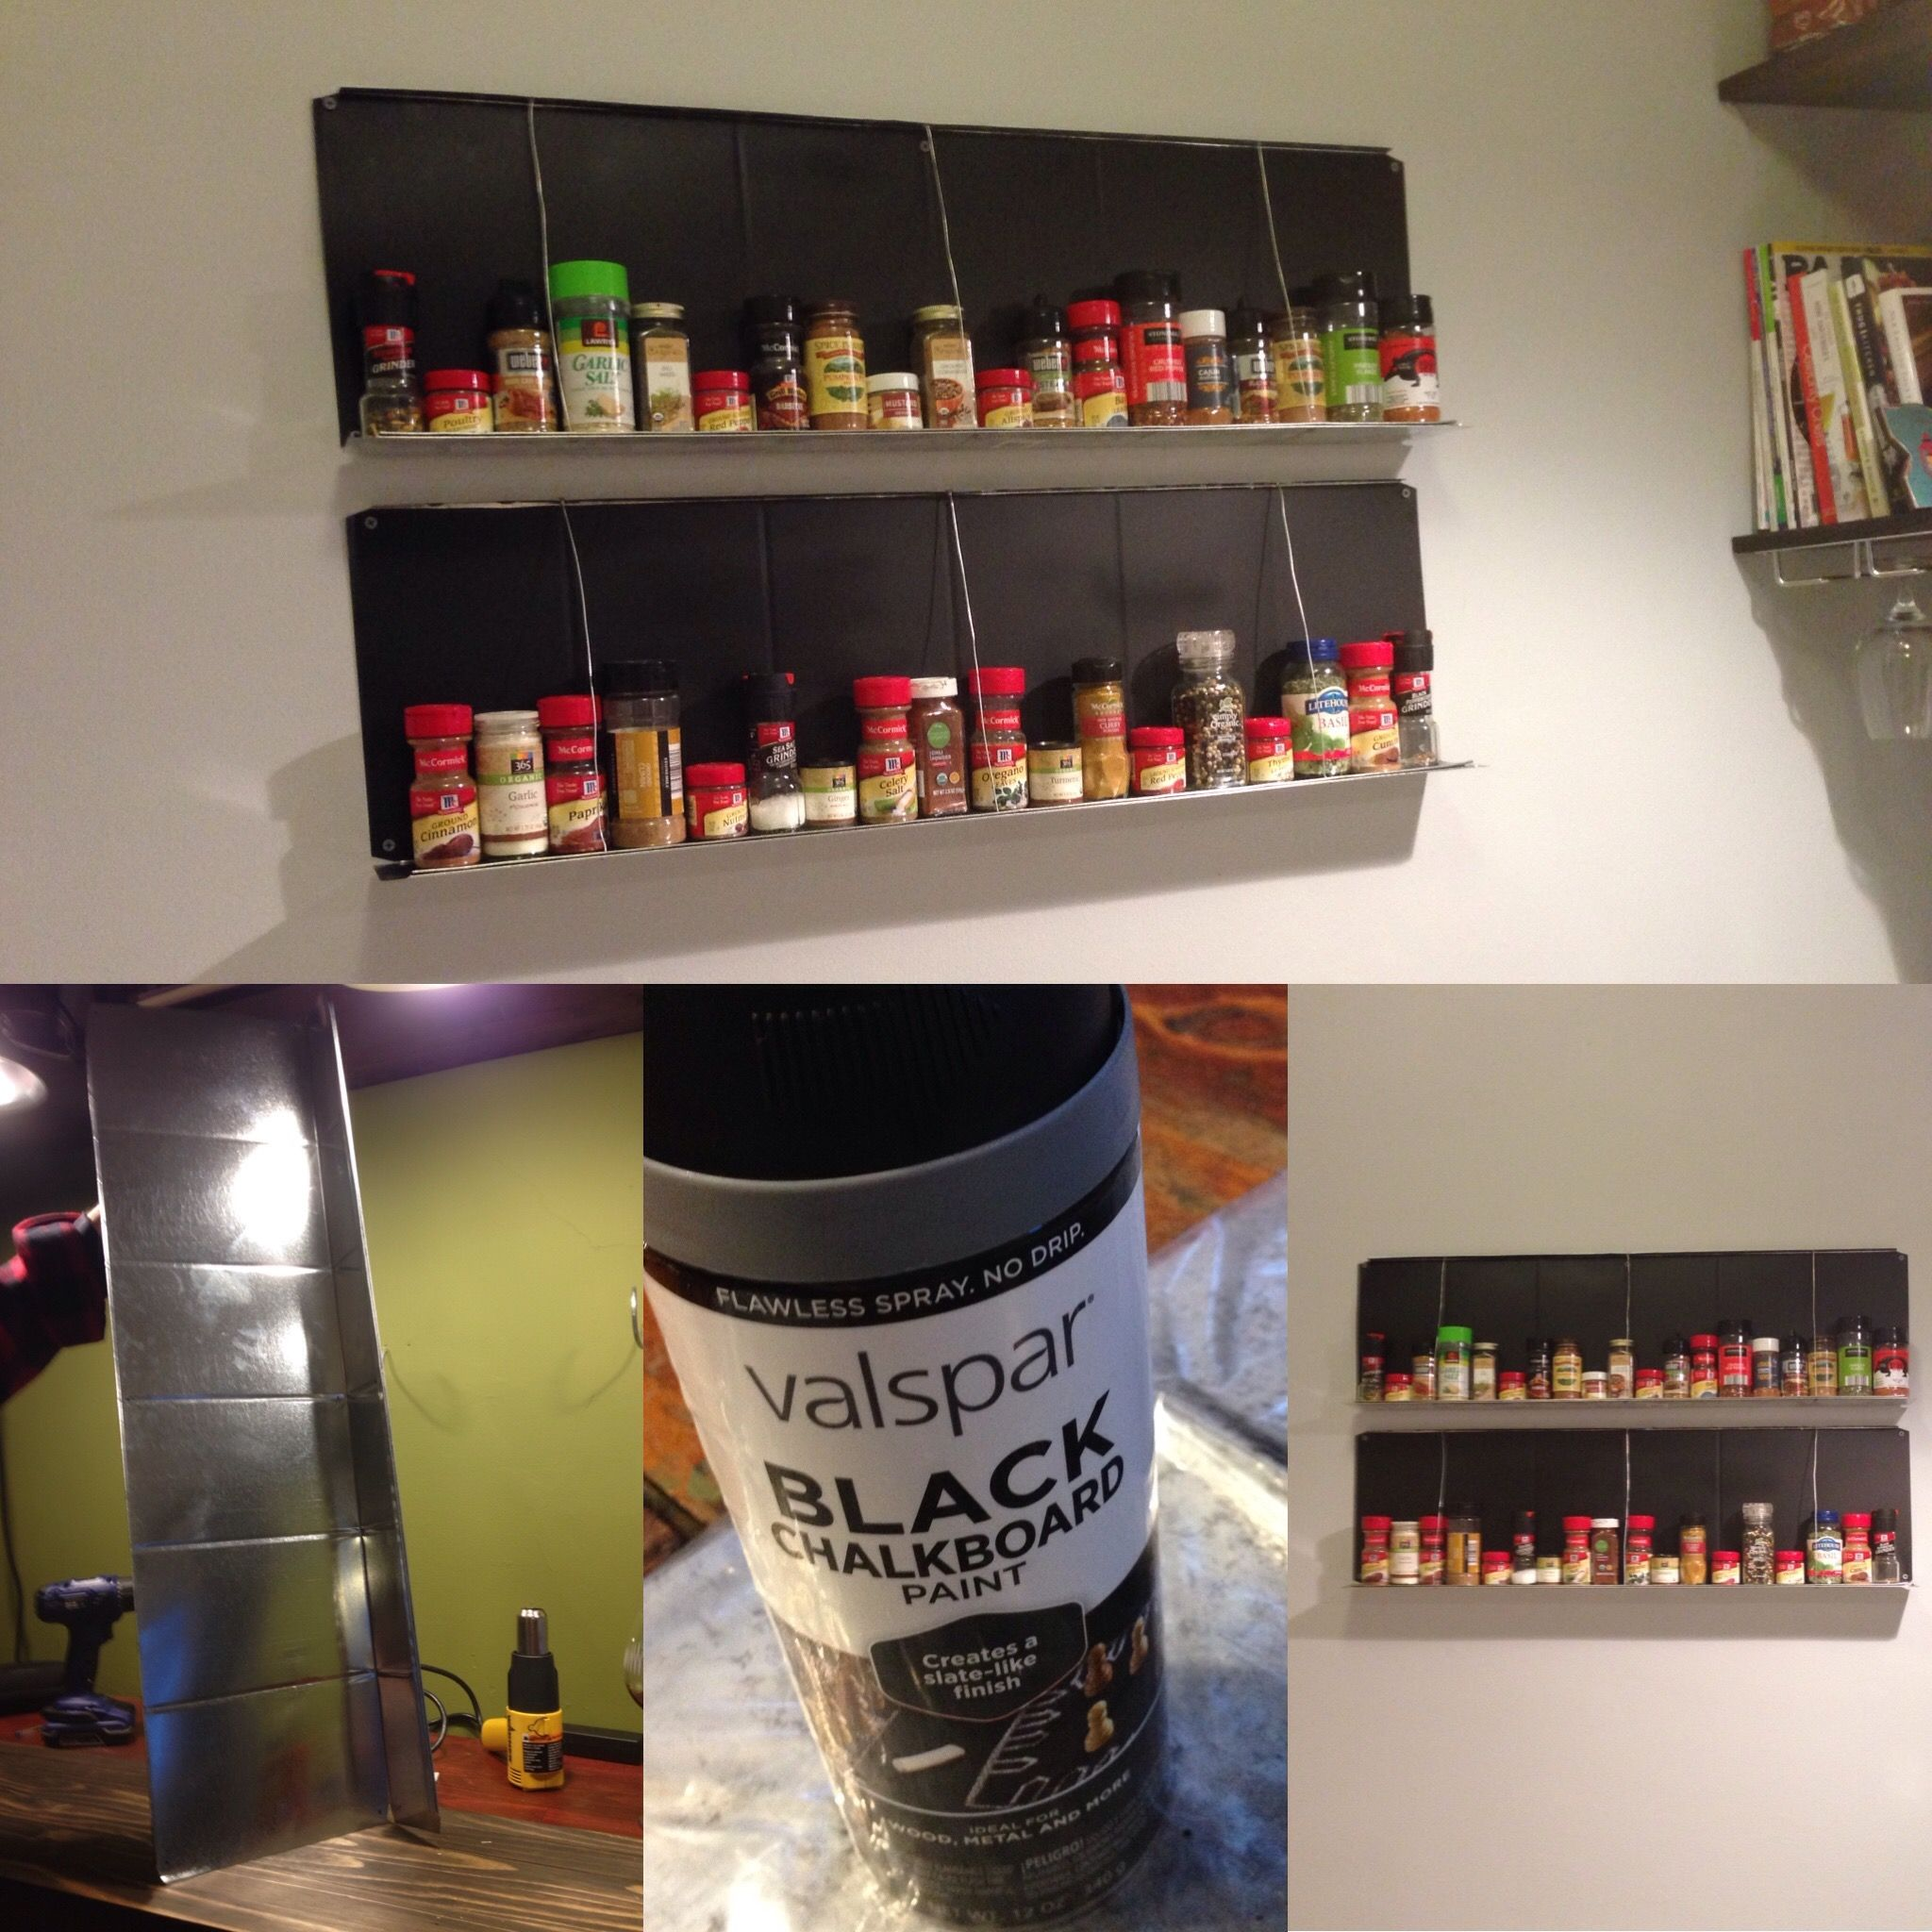 Lowes Spice Rack Enchanting Spice Rackmake From Stack Duct Air Duct Part Available At Lowes 2018